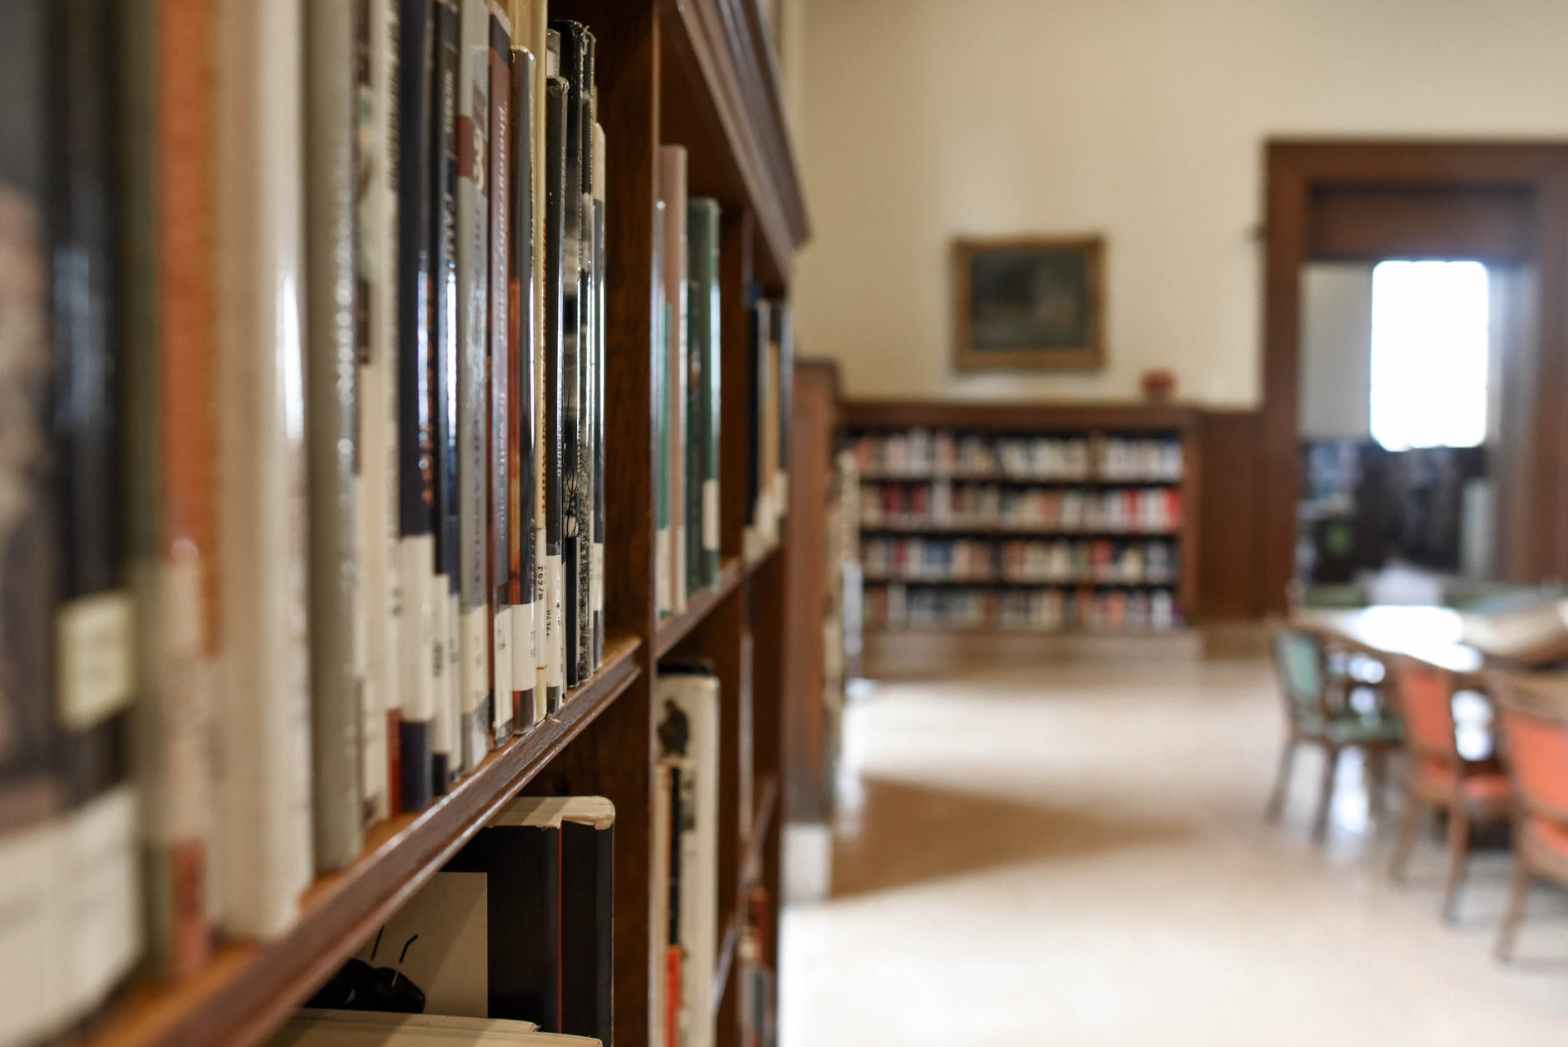 selective focus photography of bookshelf with books